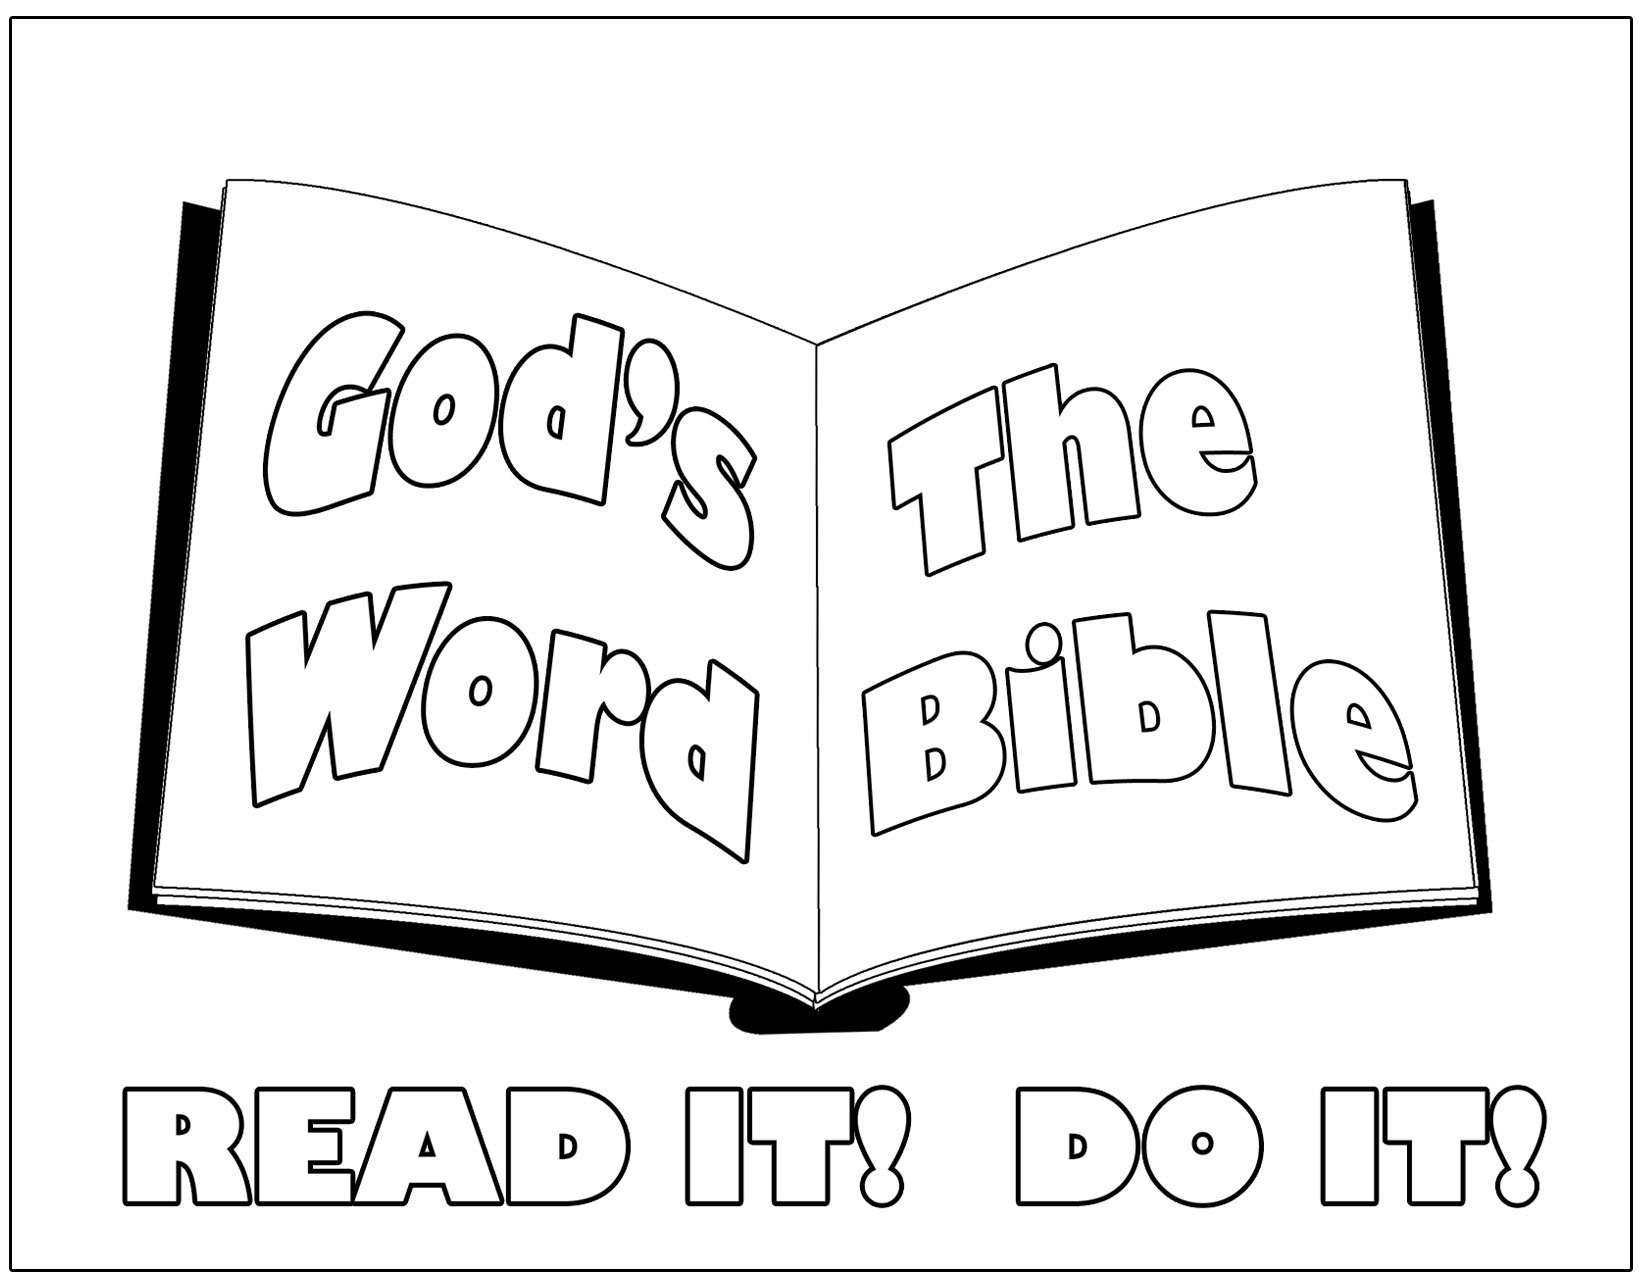 Free coloring pages bible - Free Bible Coloring Pages